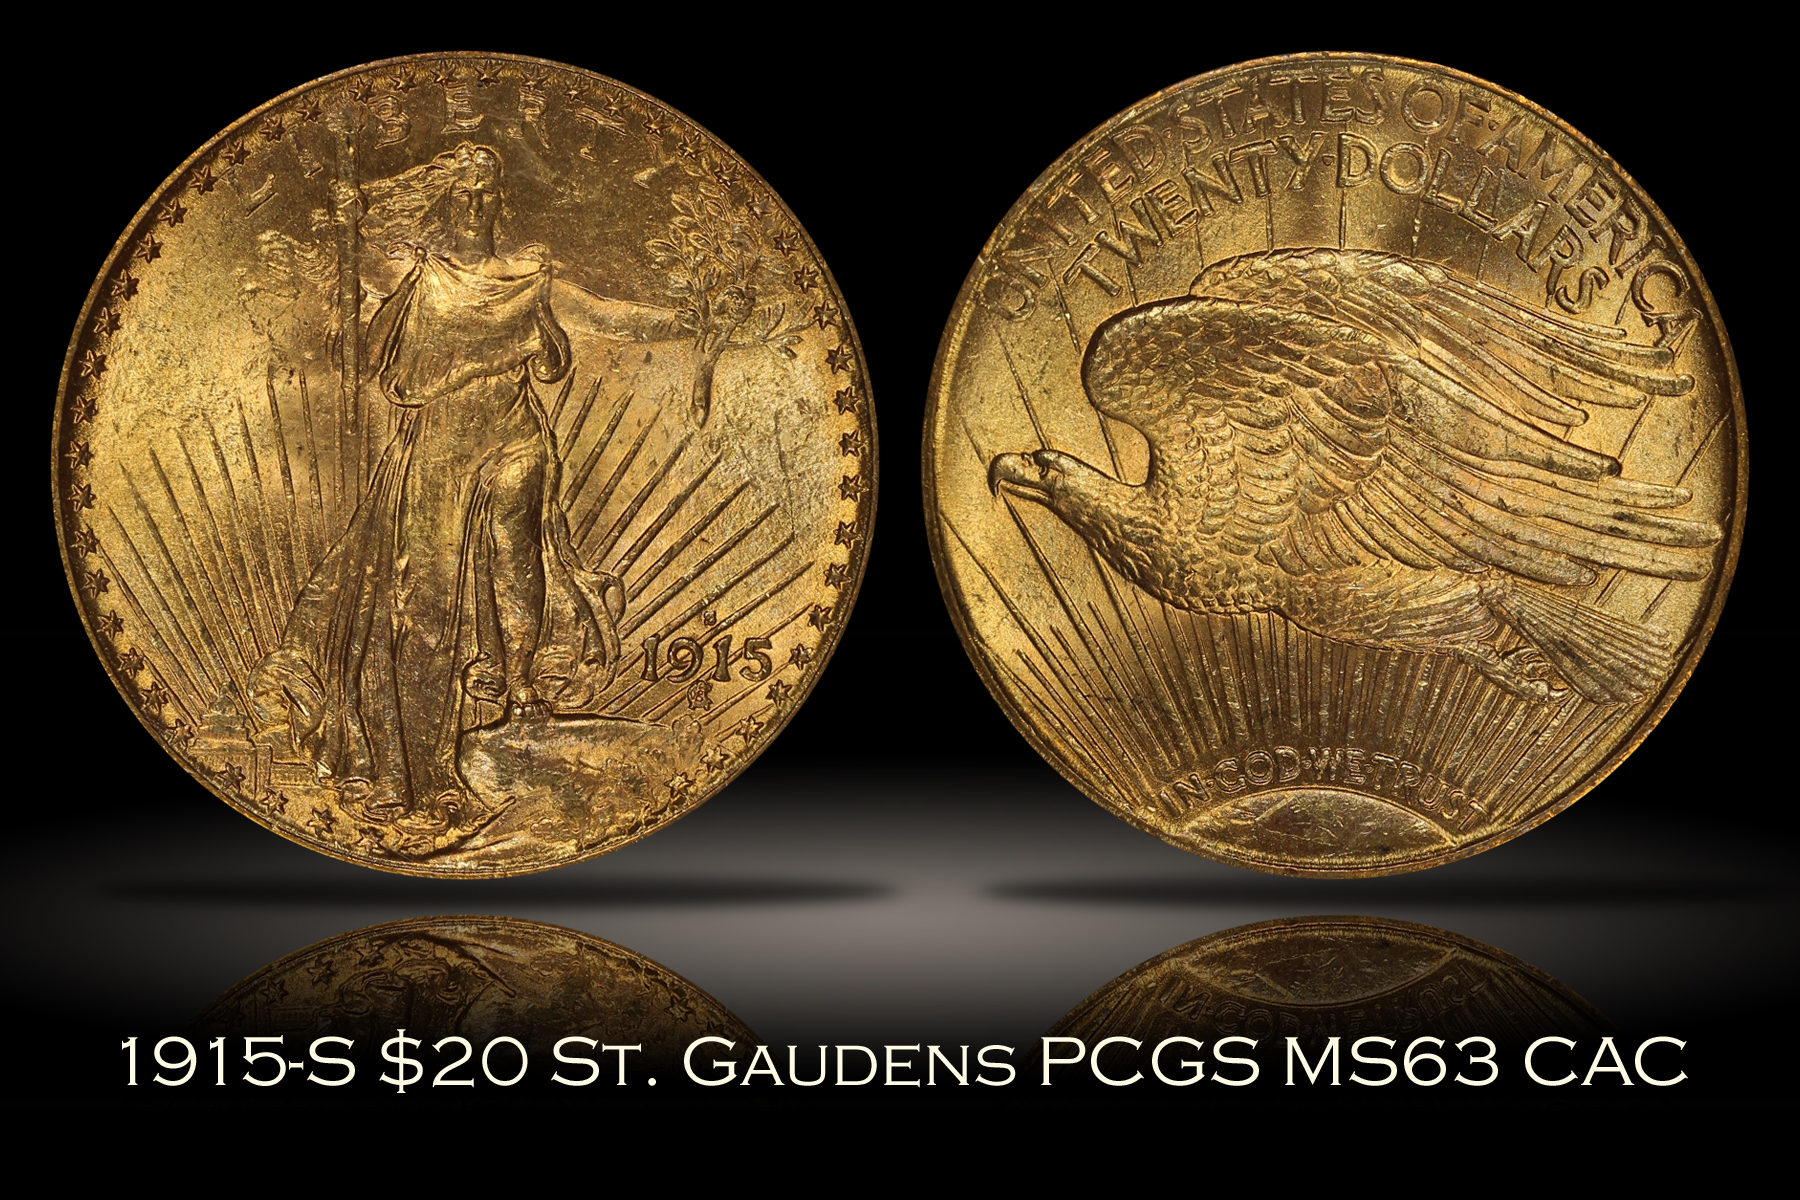 1915-S $20 St. Gaudens Gold PCGS MS63 OGH CAC